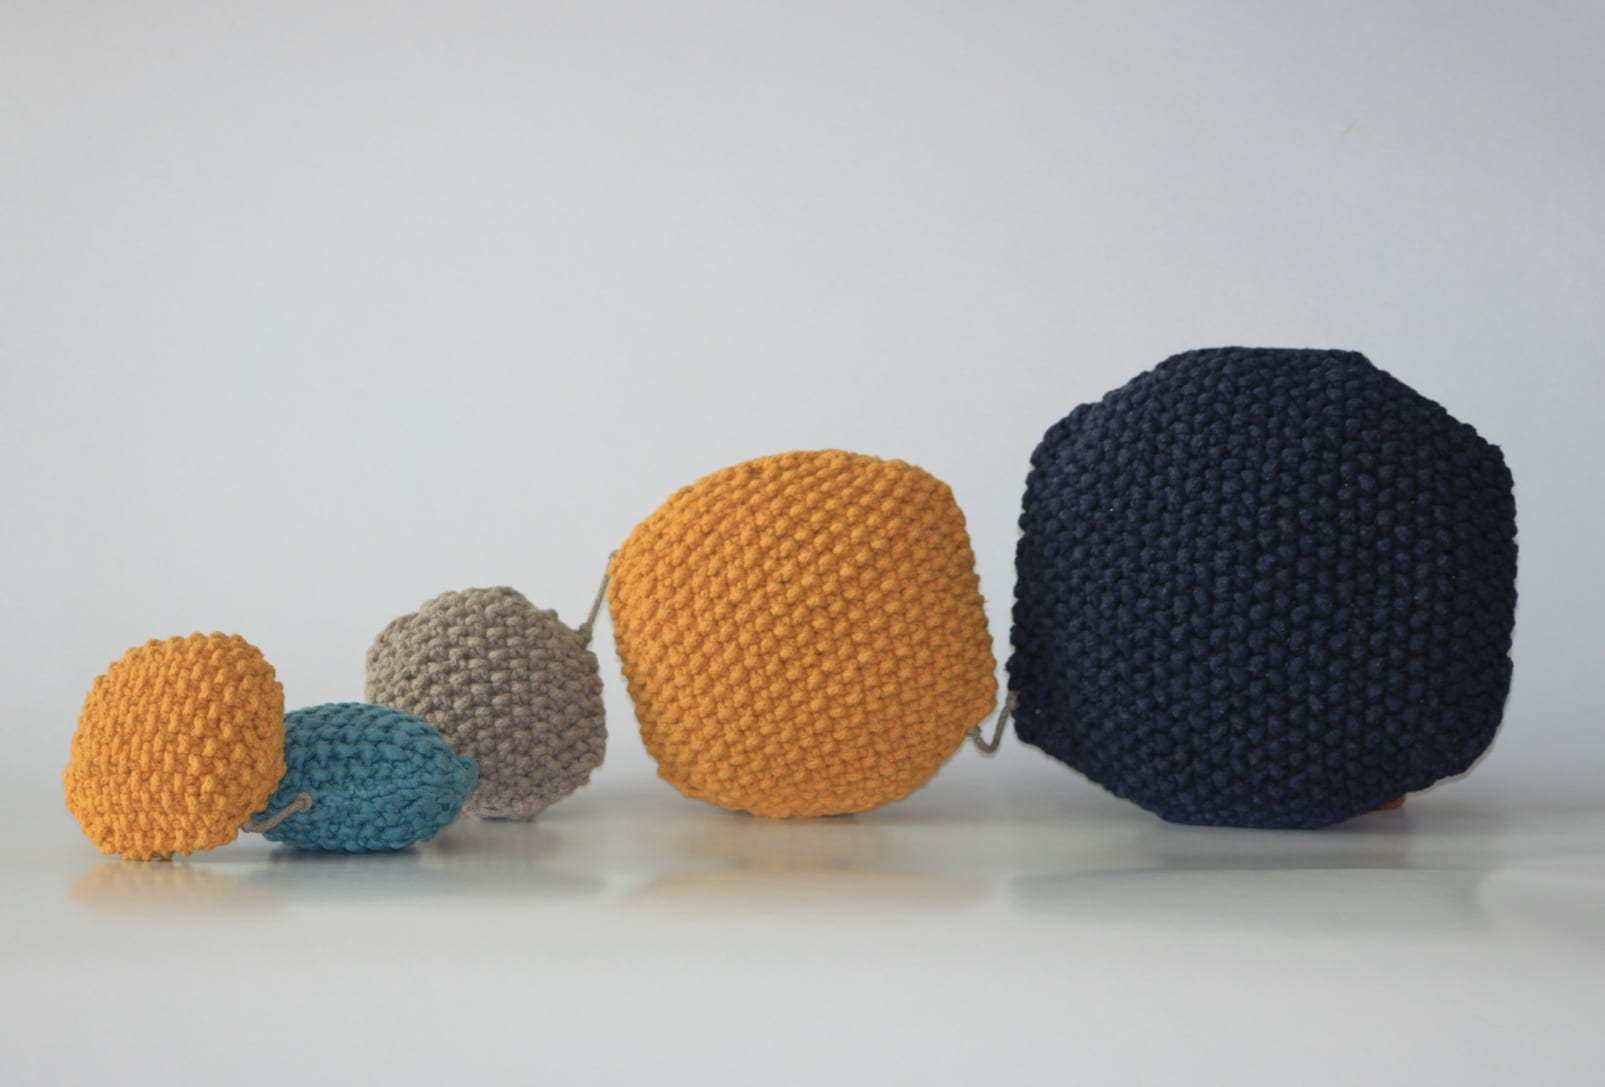 Complete your house decor with new and playful Oriz pillows